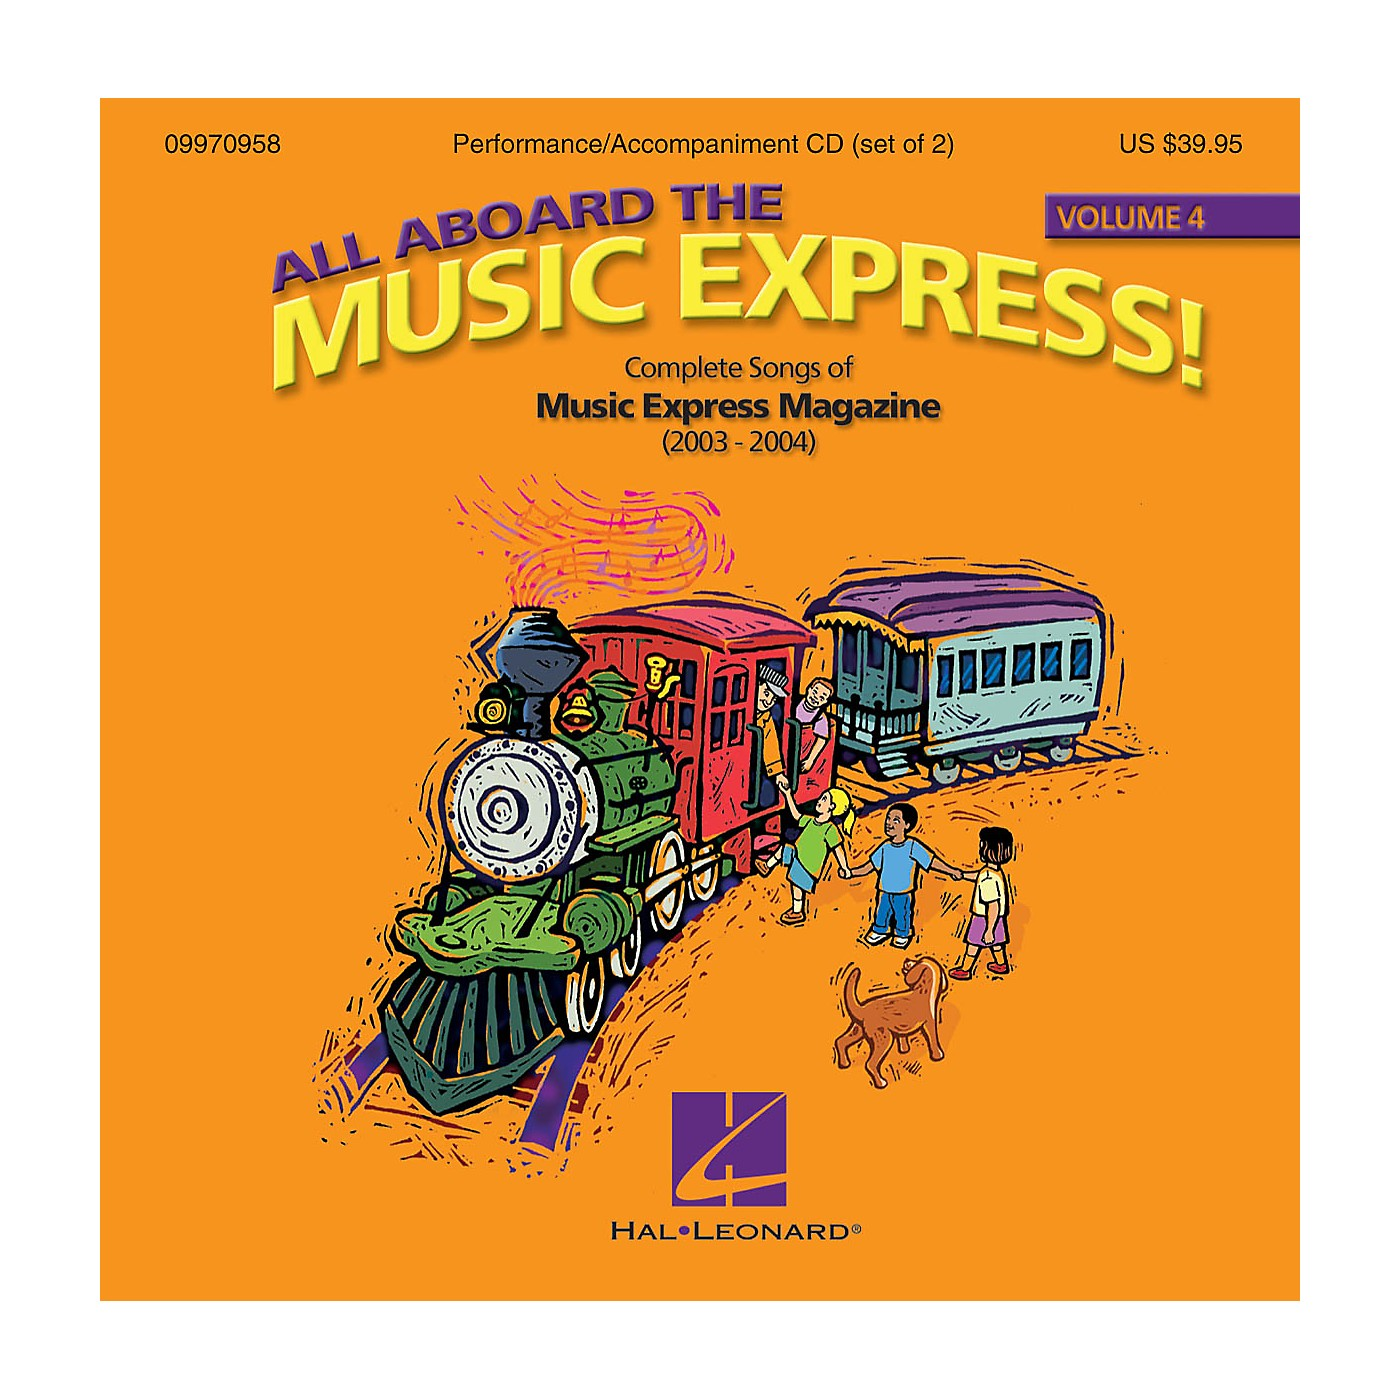 Hal Leonard All Aboard the Music Express Volume 4 (Complete Songs of Music Express Magazine (2003-2004)) ShowTrax CD thumbnail